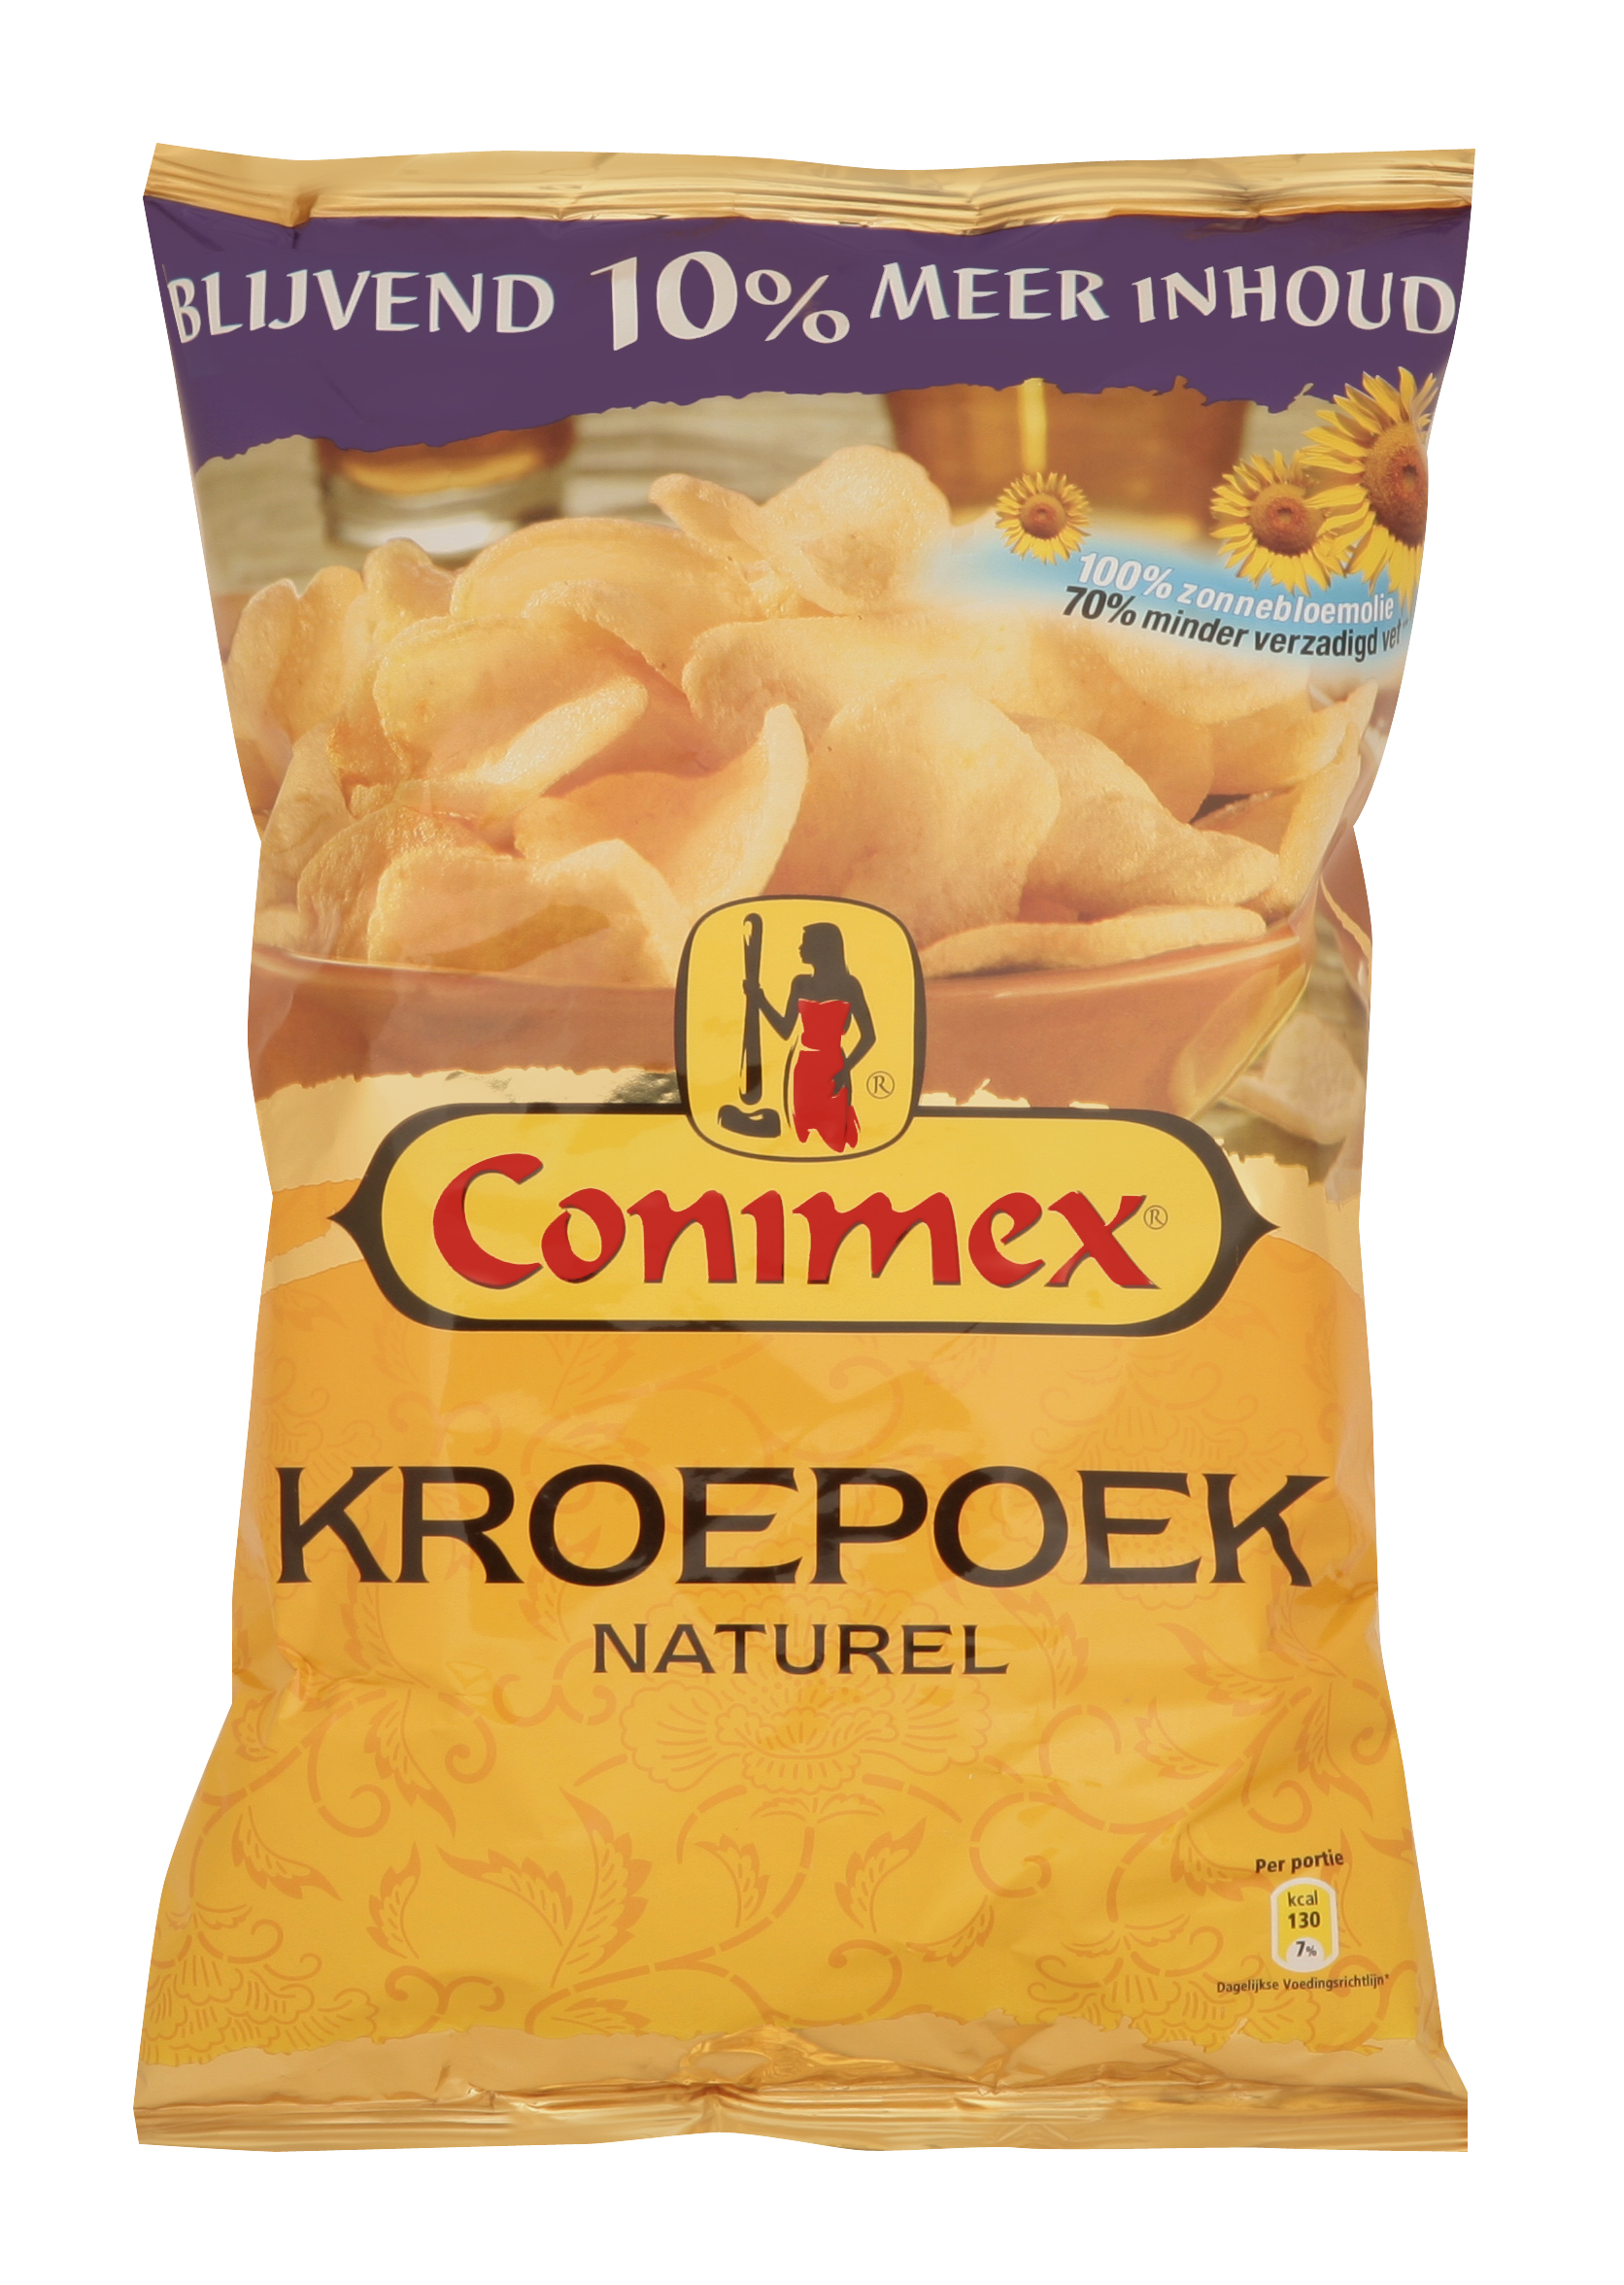 Conimex Ready Made Kroepoek 2.1oz-small